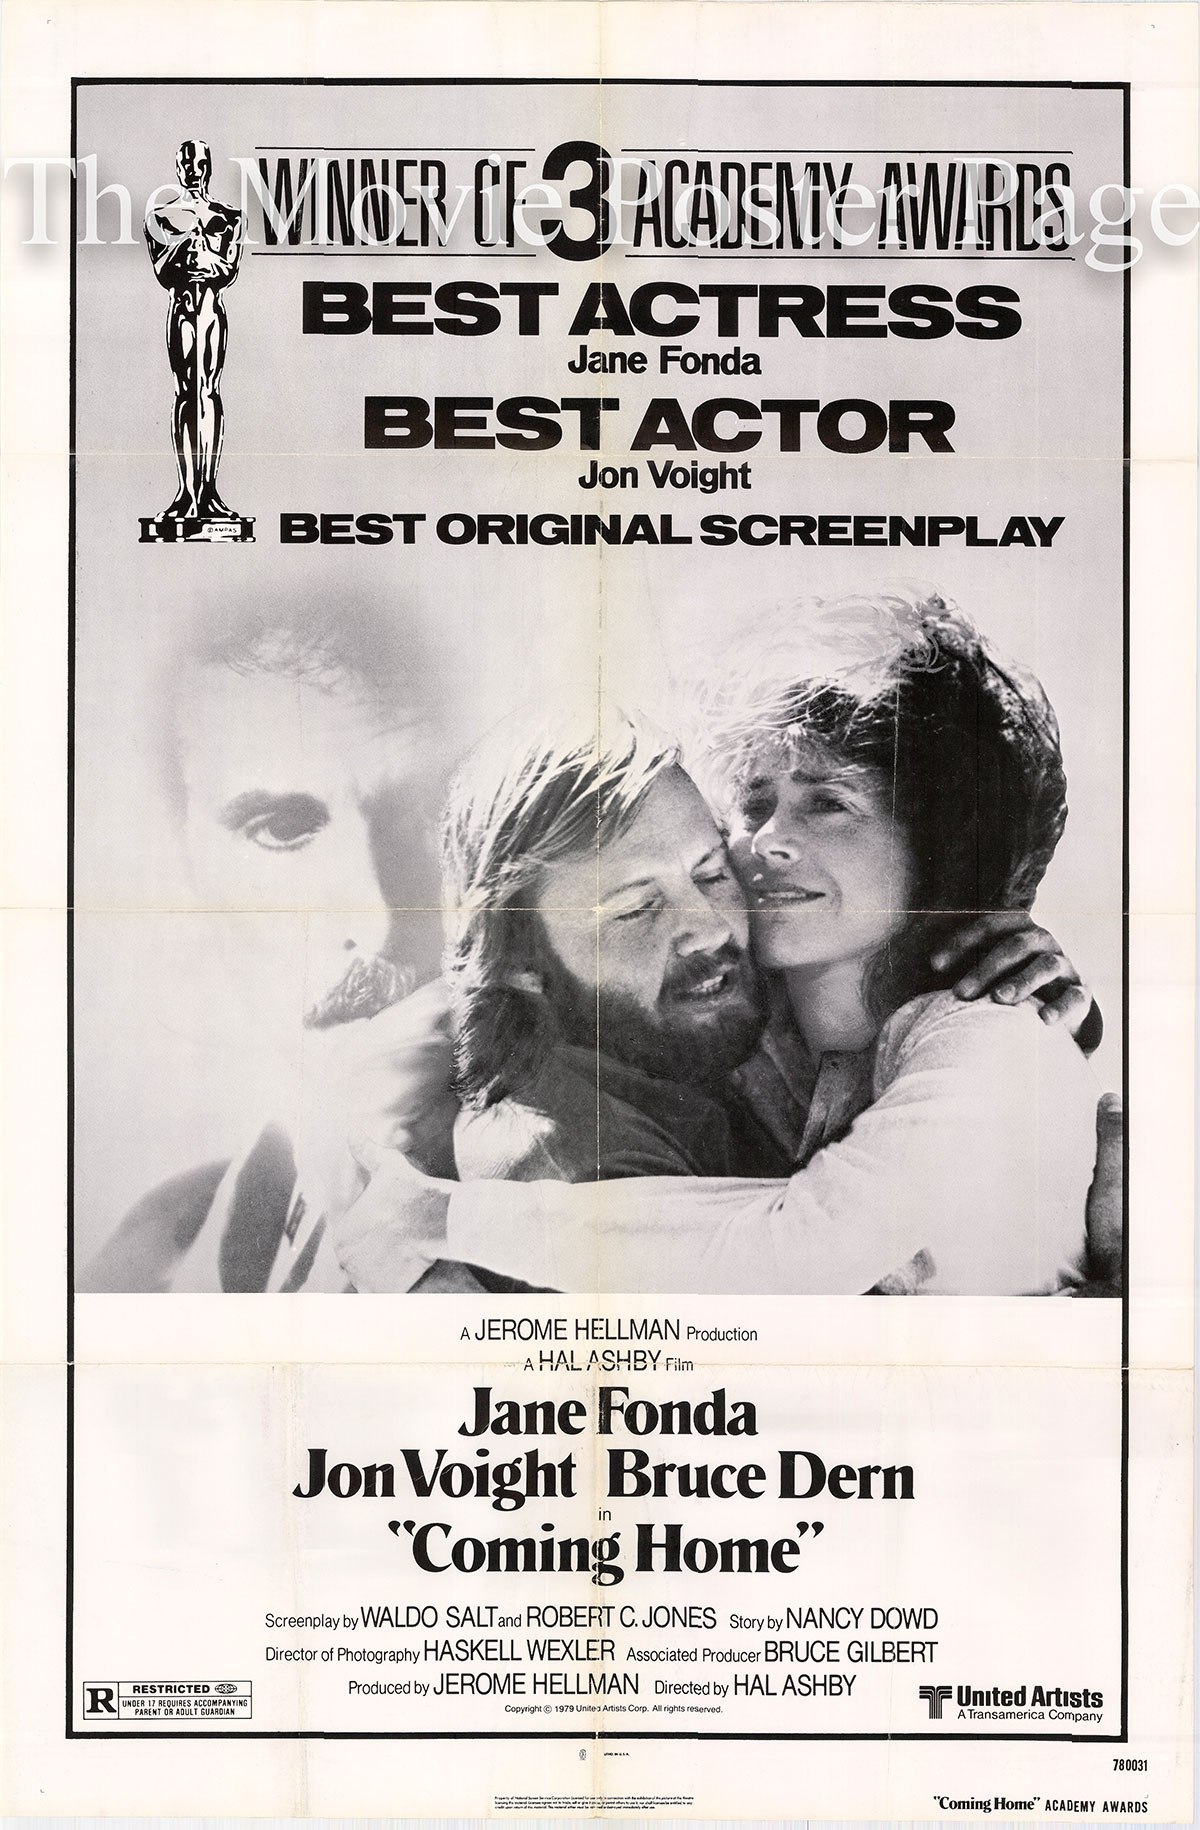 Pictured is a US Academy Awards one-sheet poster for the 1975 Hal Ashby film Coming Home starring Jane Fonds.